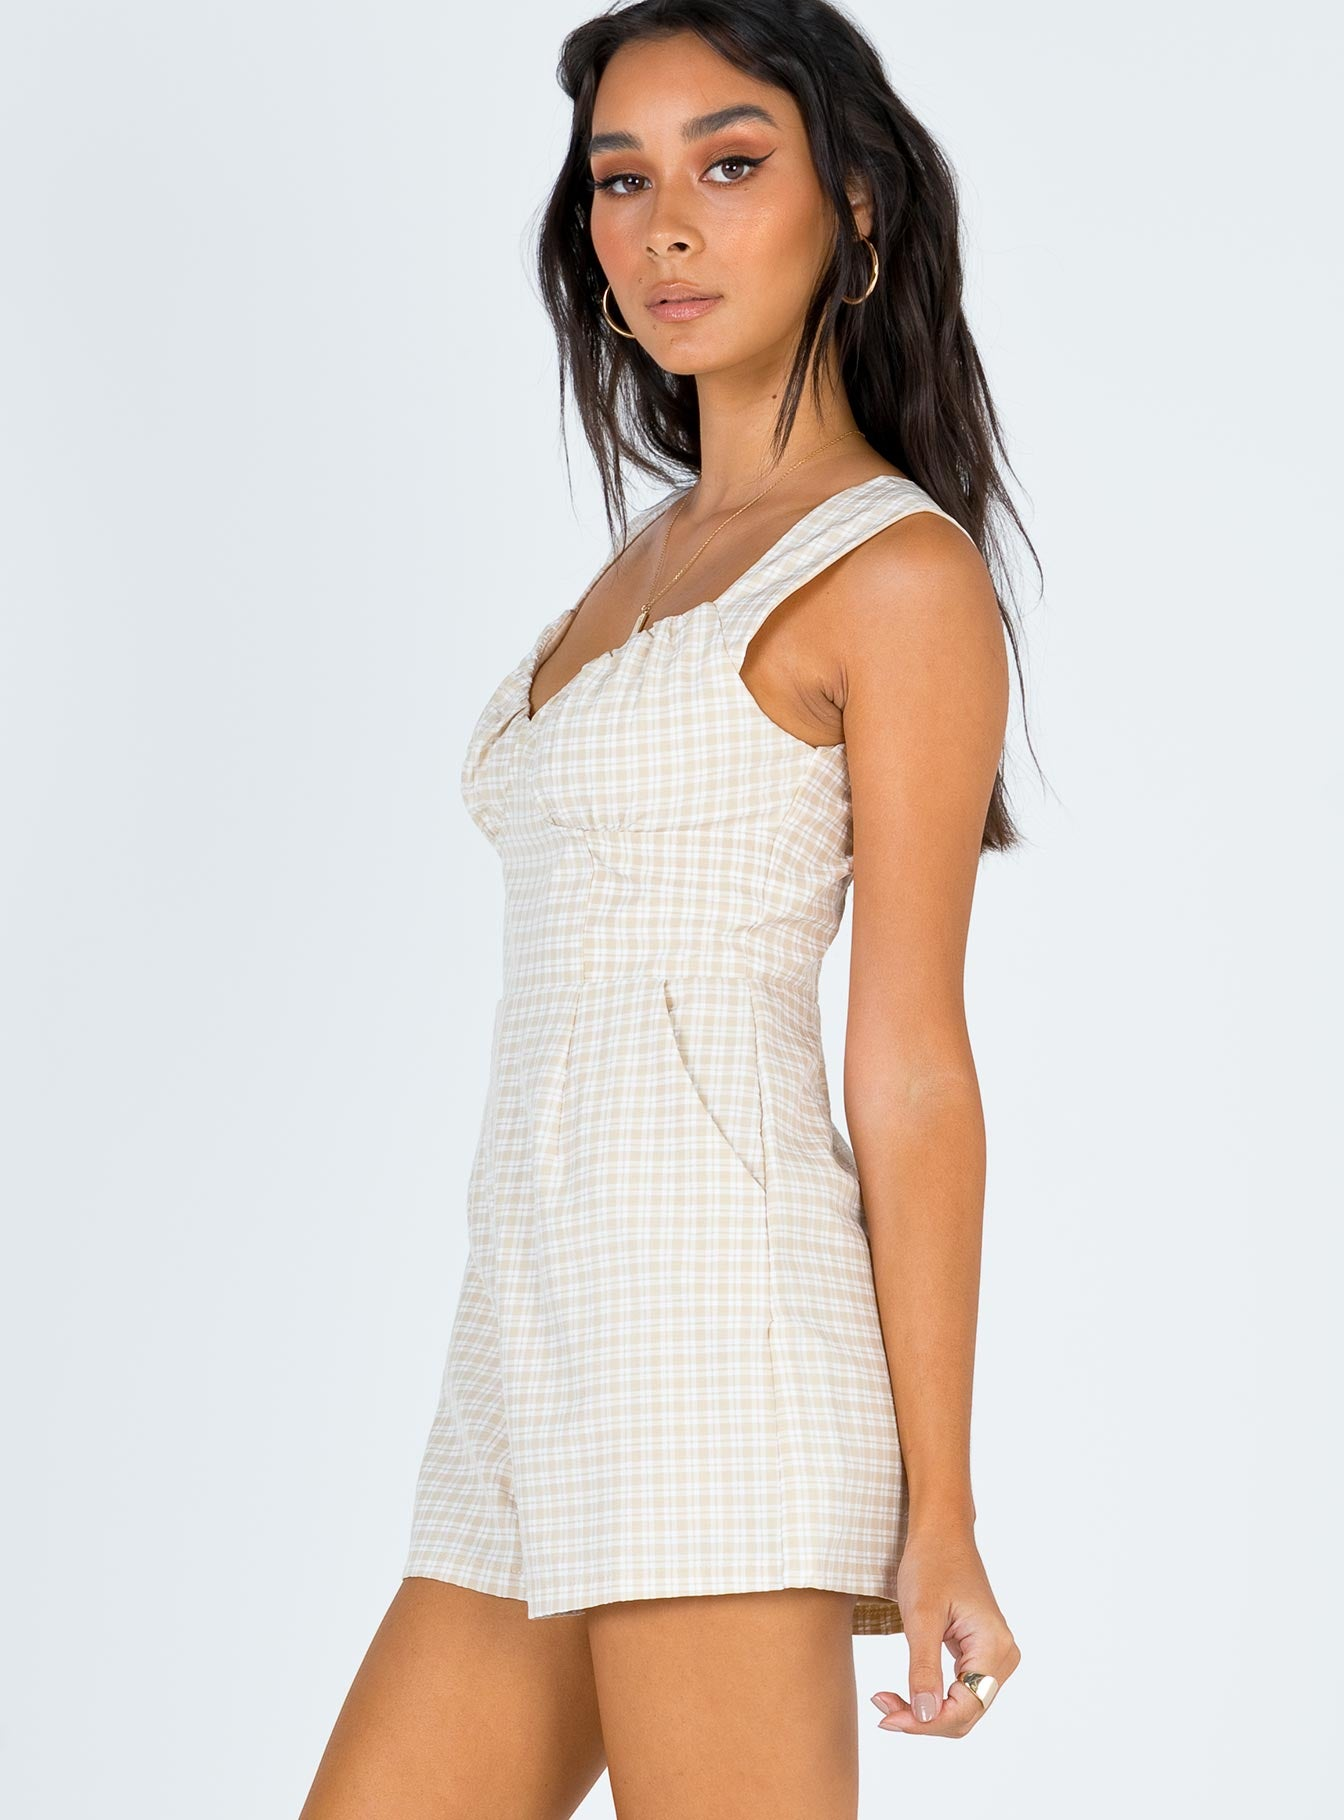 Lucky Star Romper